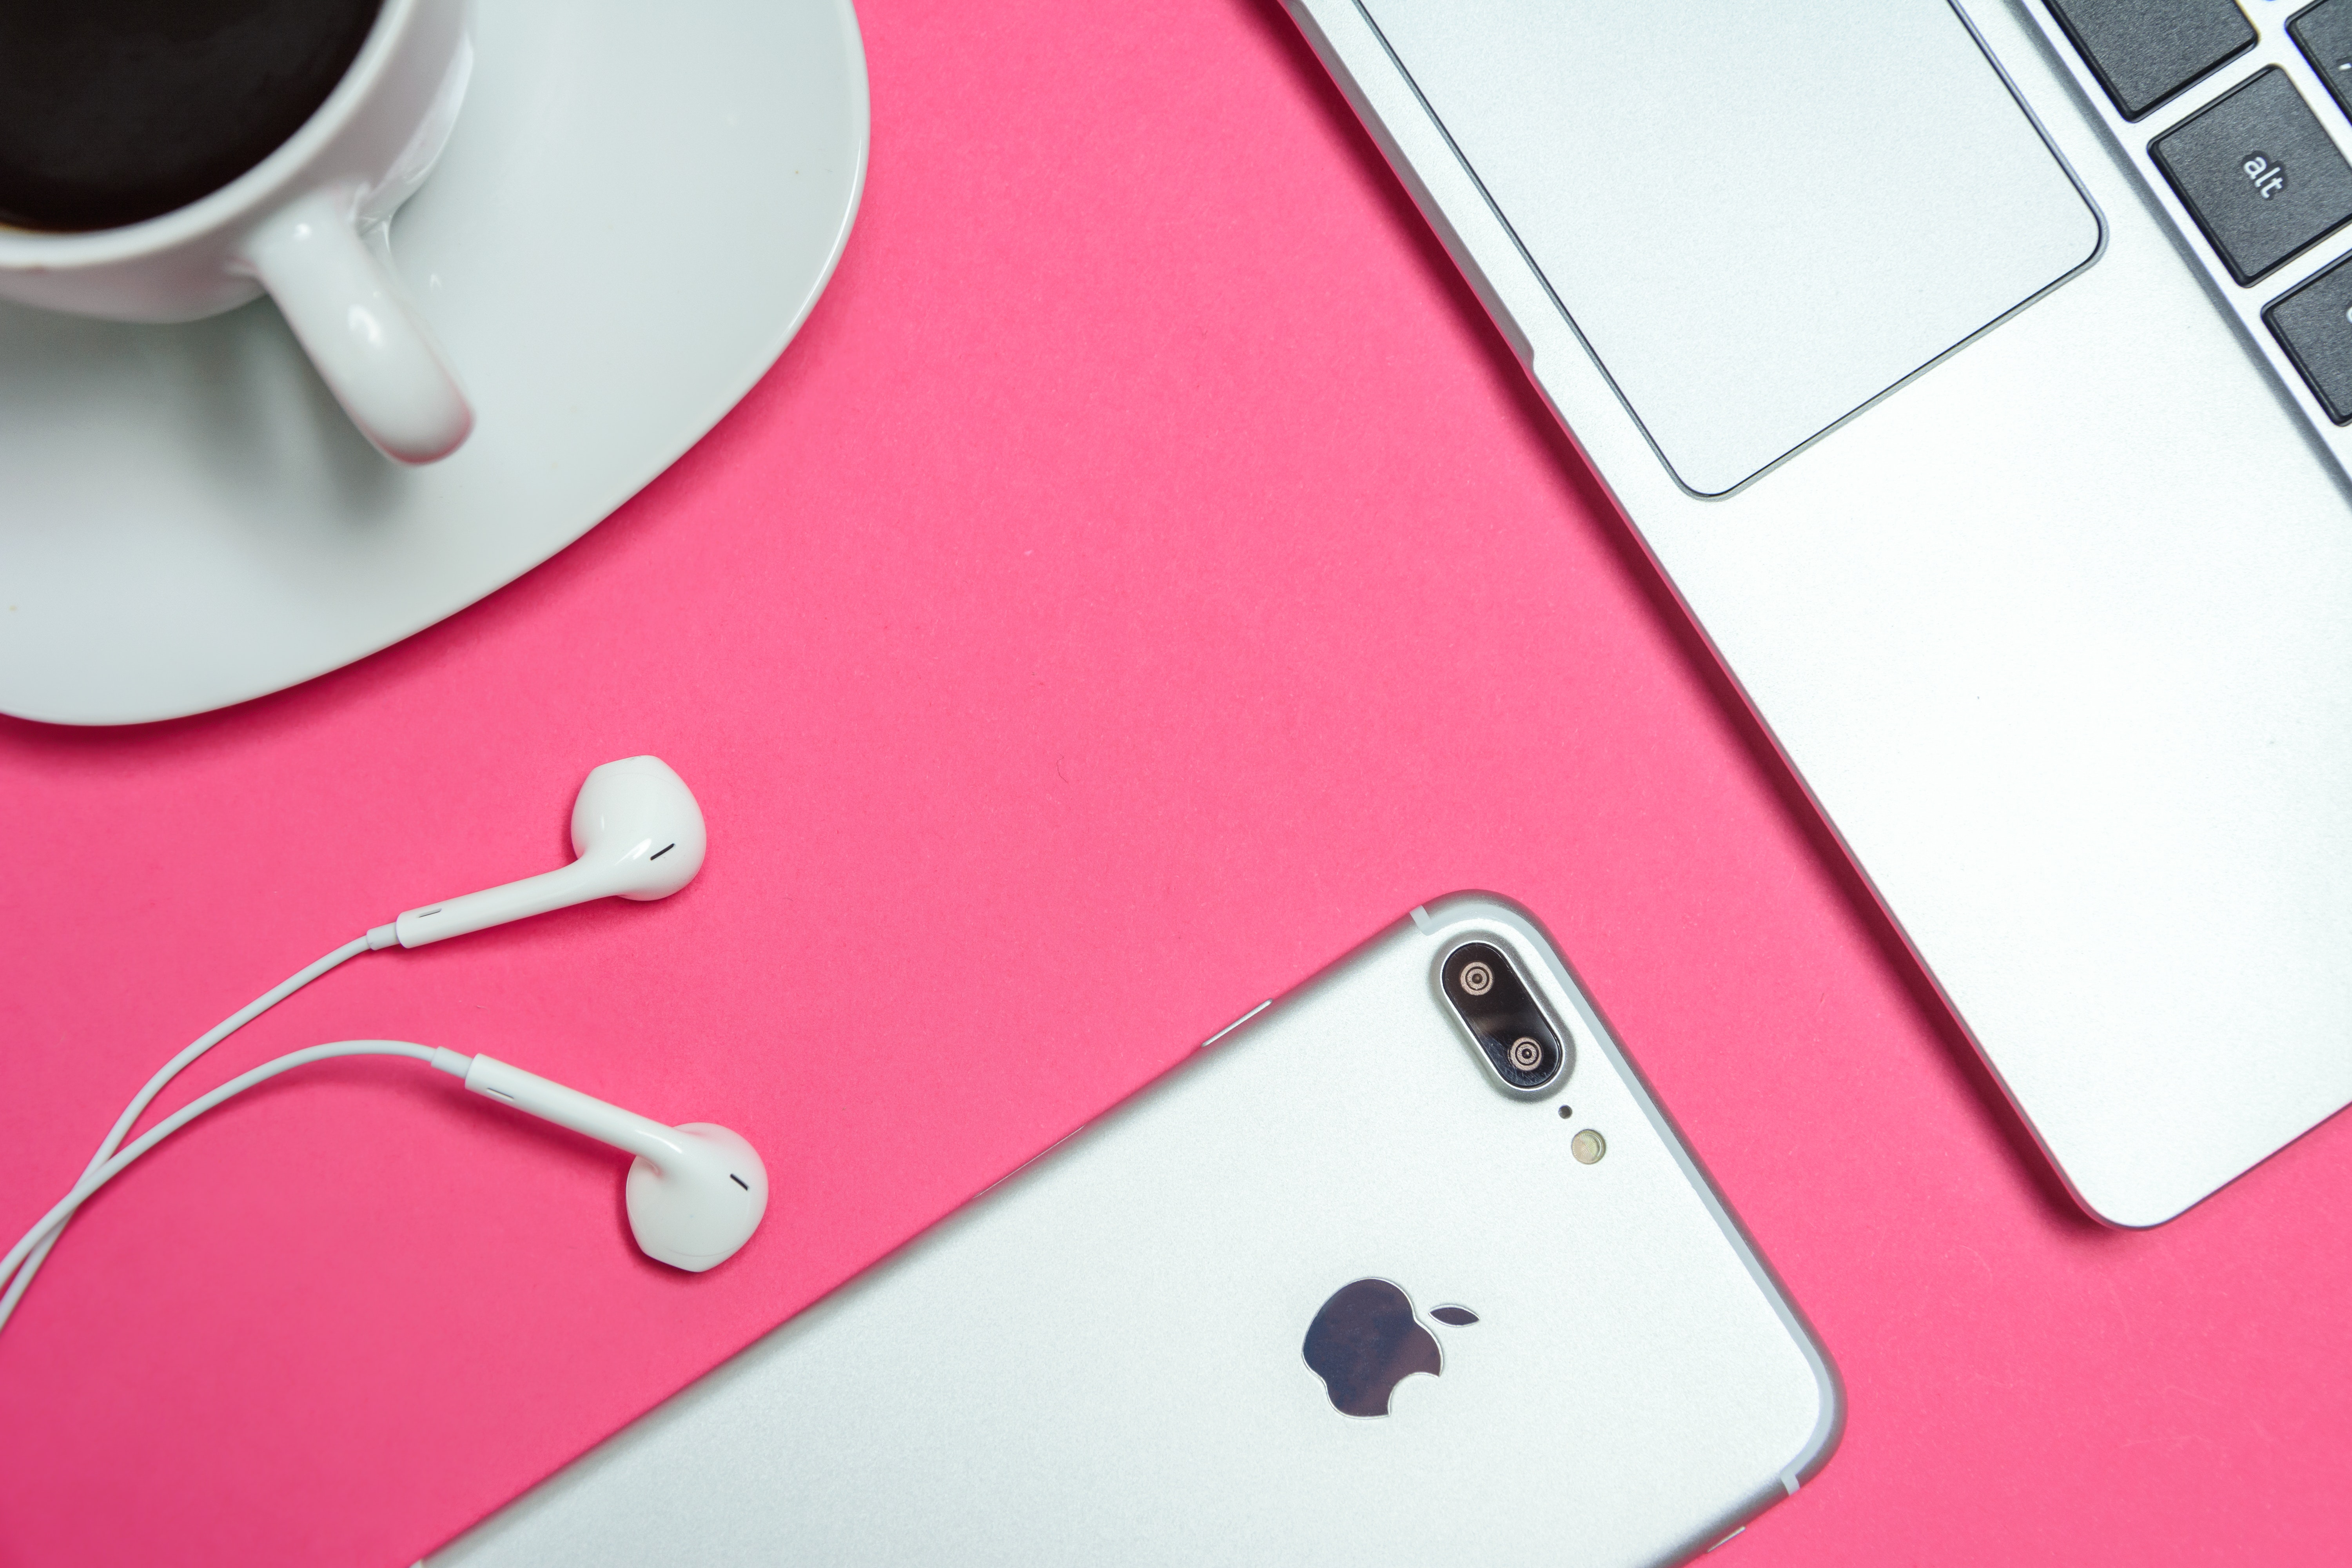 accessories-apple-business-1038628